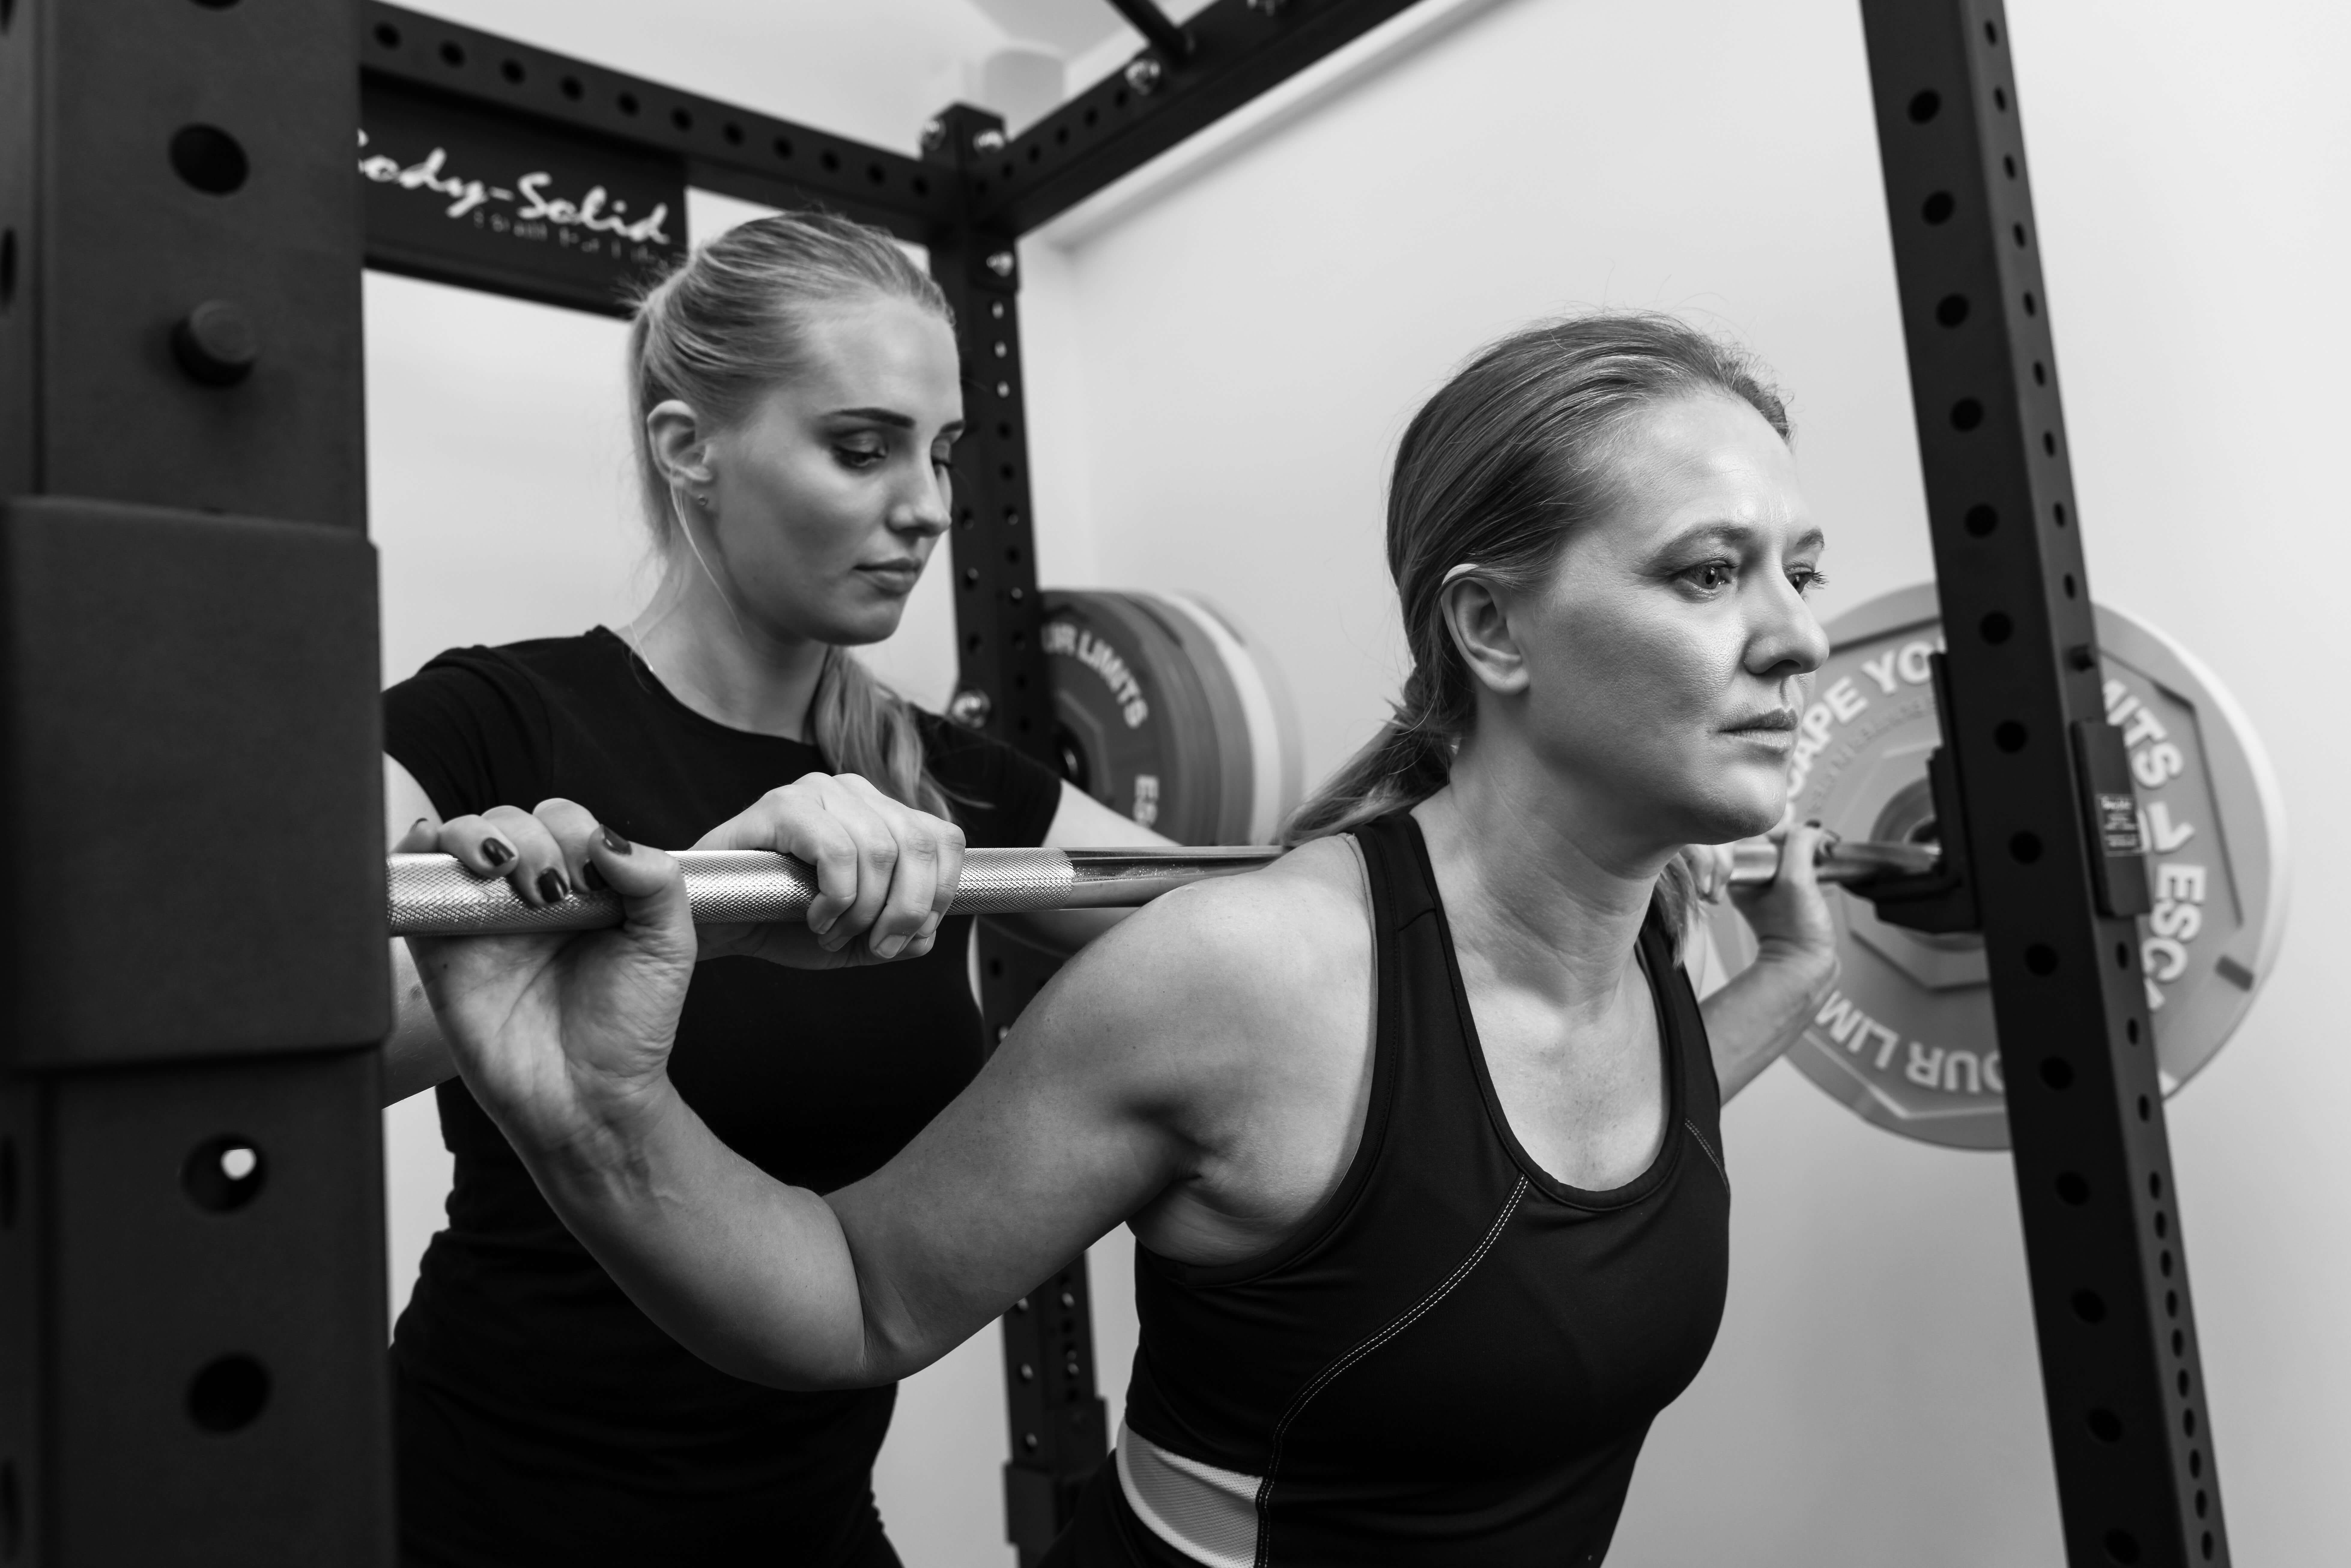 Exercising in the gym - Cambridge Physiotherapy and Sports Injury Clinic